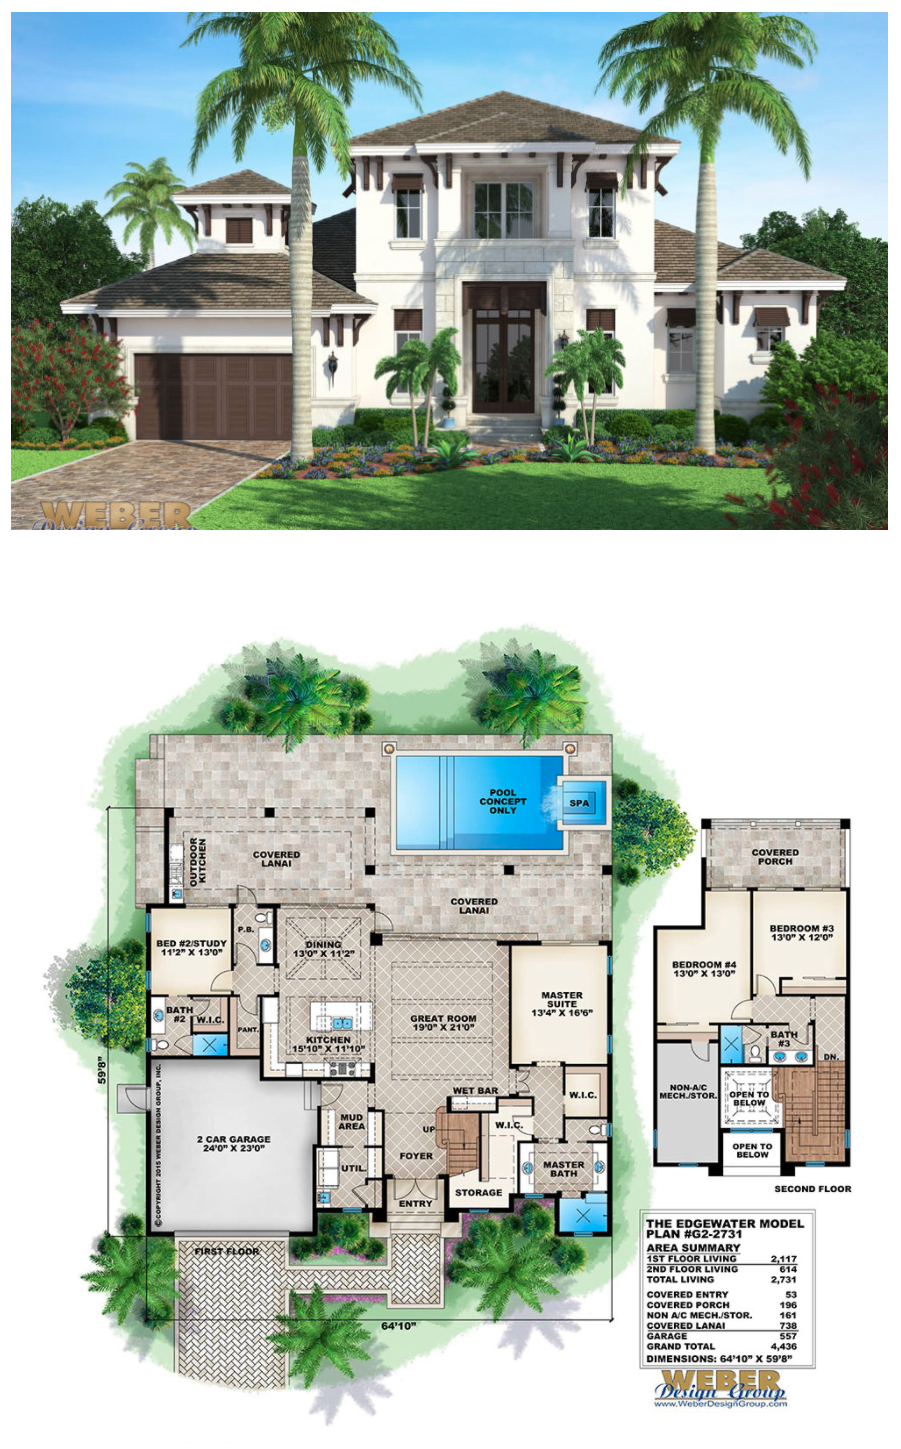 Beach house plan transitional west indies beach home for 3 bedroom caribbean house plans